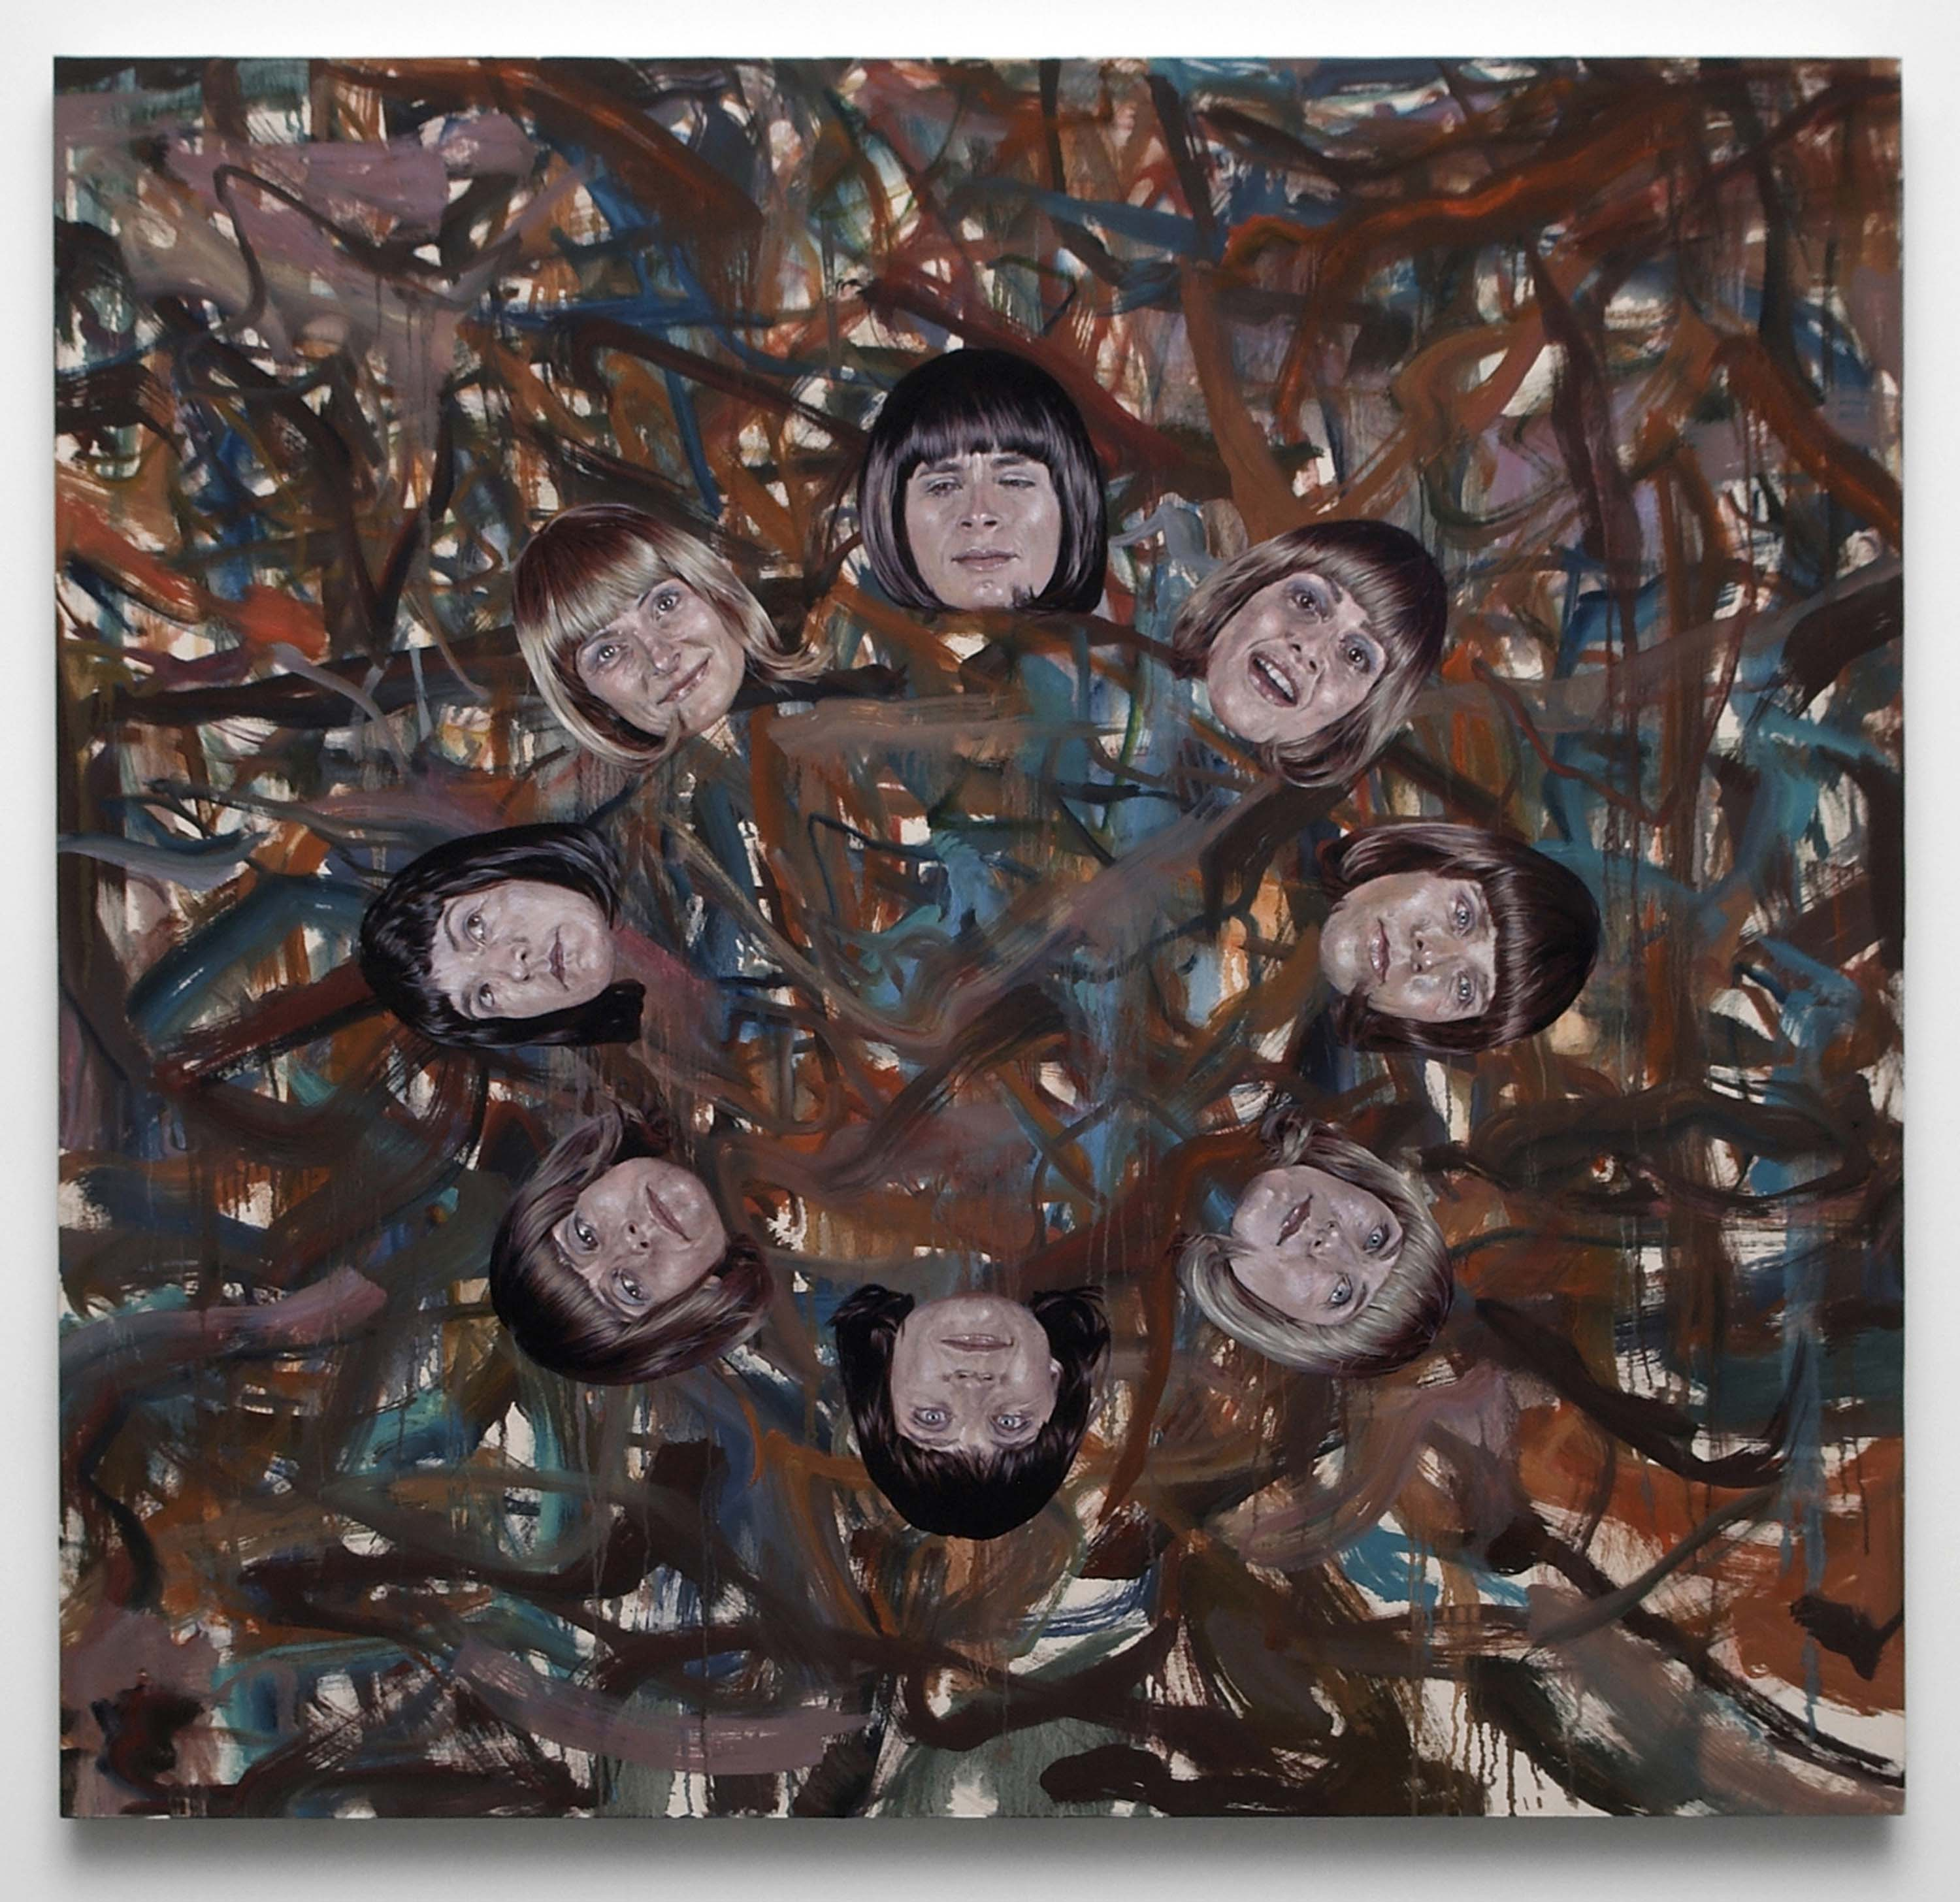 Jim Shaw, Untitled (Faces in circle) (2009) Courtesy the artist and Simon Lee Gallery, London